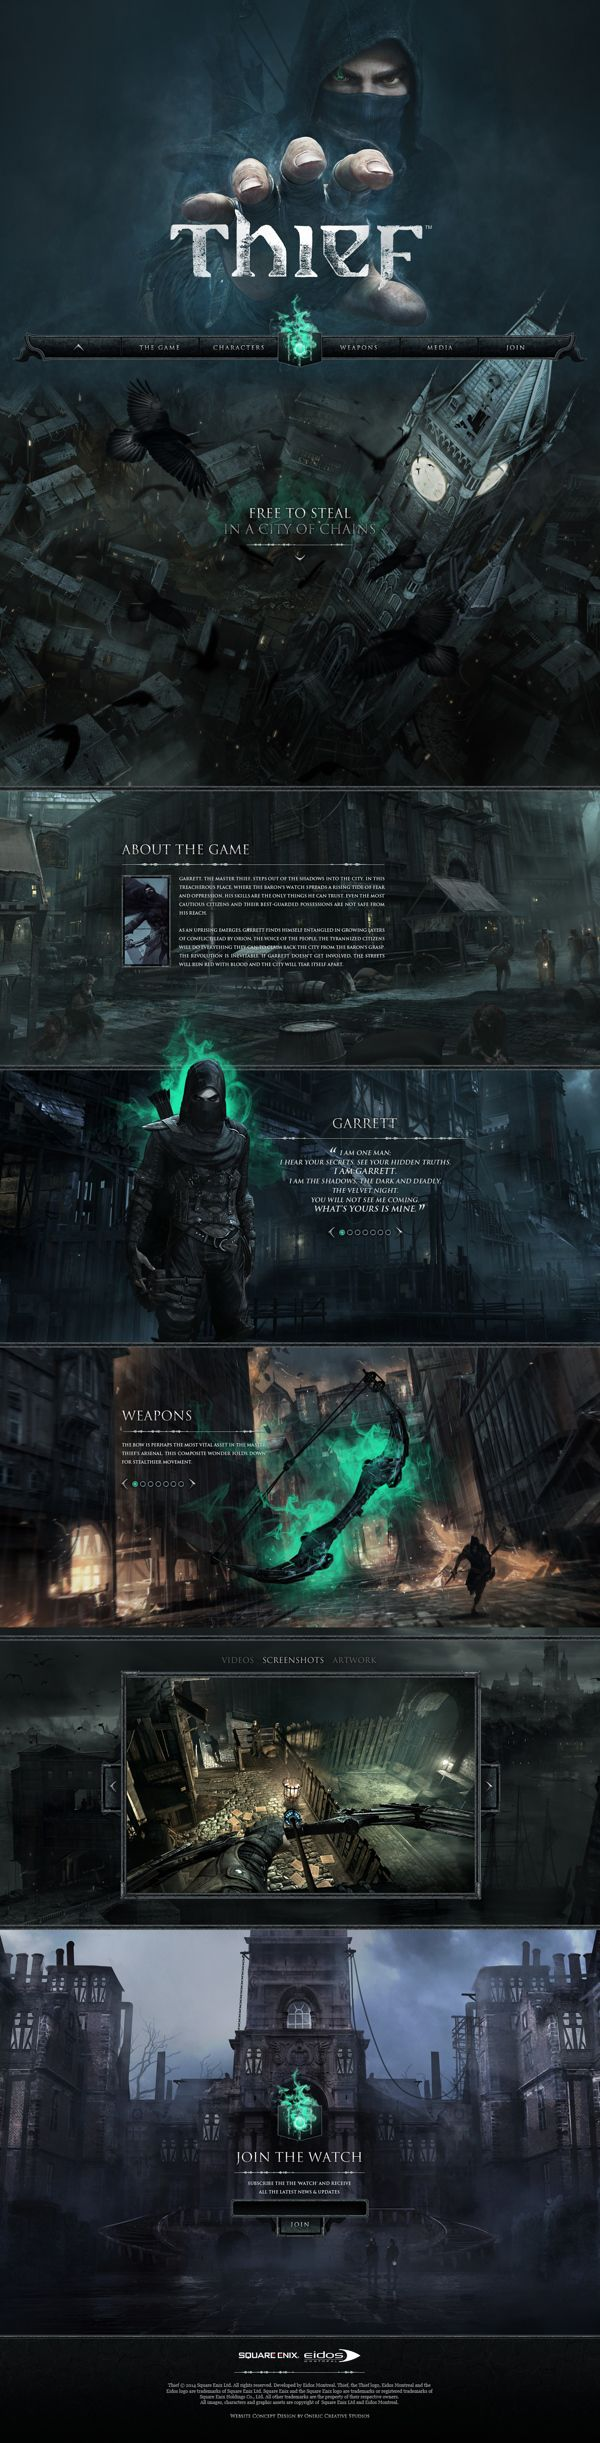 Thief 4 Game Website Concept Design by Oniric Creative Studios, via Behance